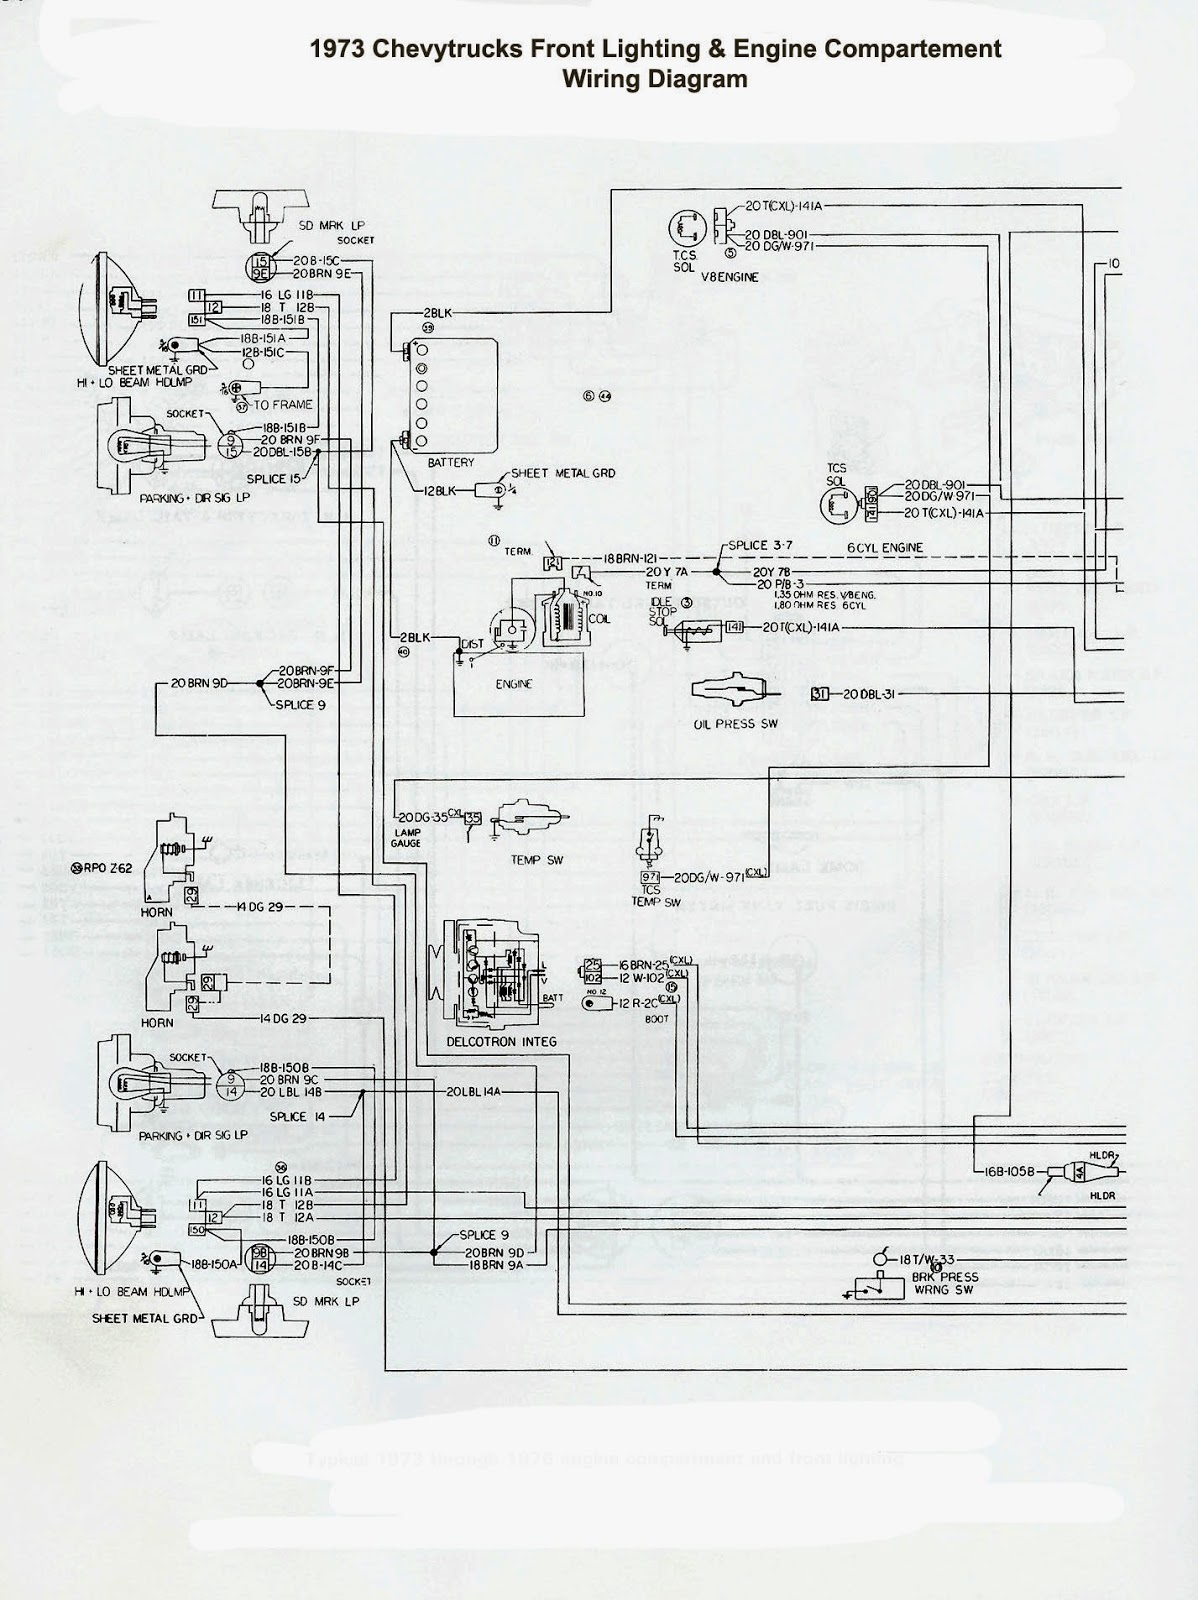 1978 camaro engine wiring diagram wiring library 1978 280z fuel pump wiring 1978 camaro wiring diagram schematic [ 1198 x 1600 Pixel ]